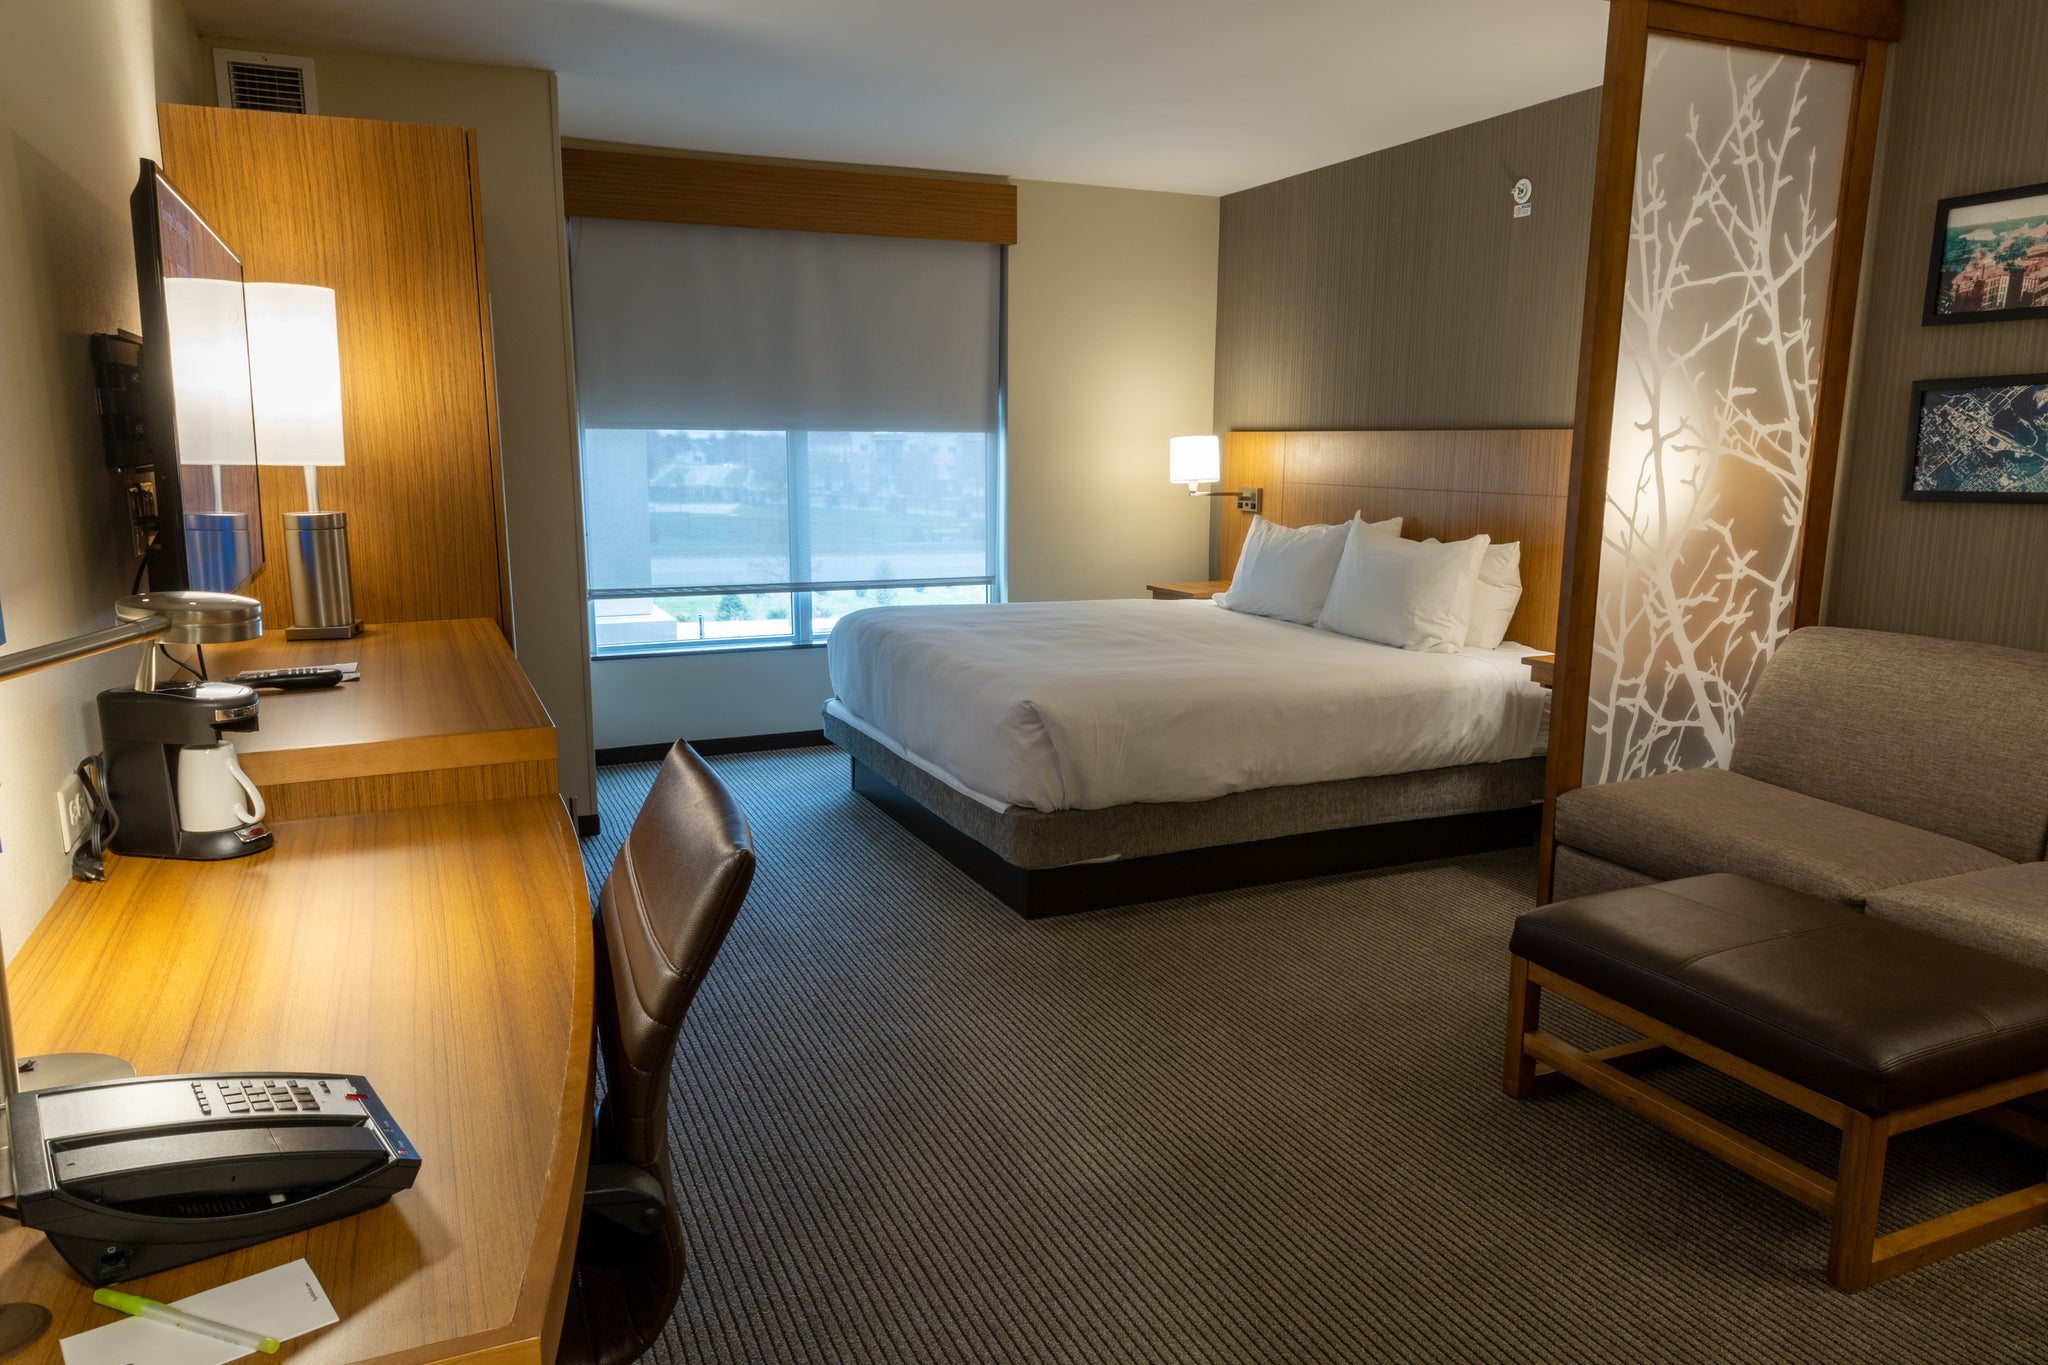 one of the bedrooms offered by the hyatt place